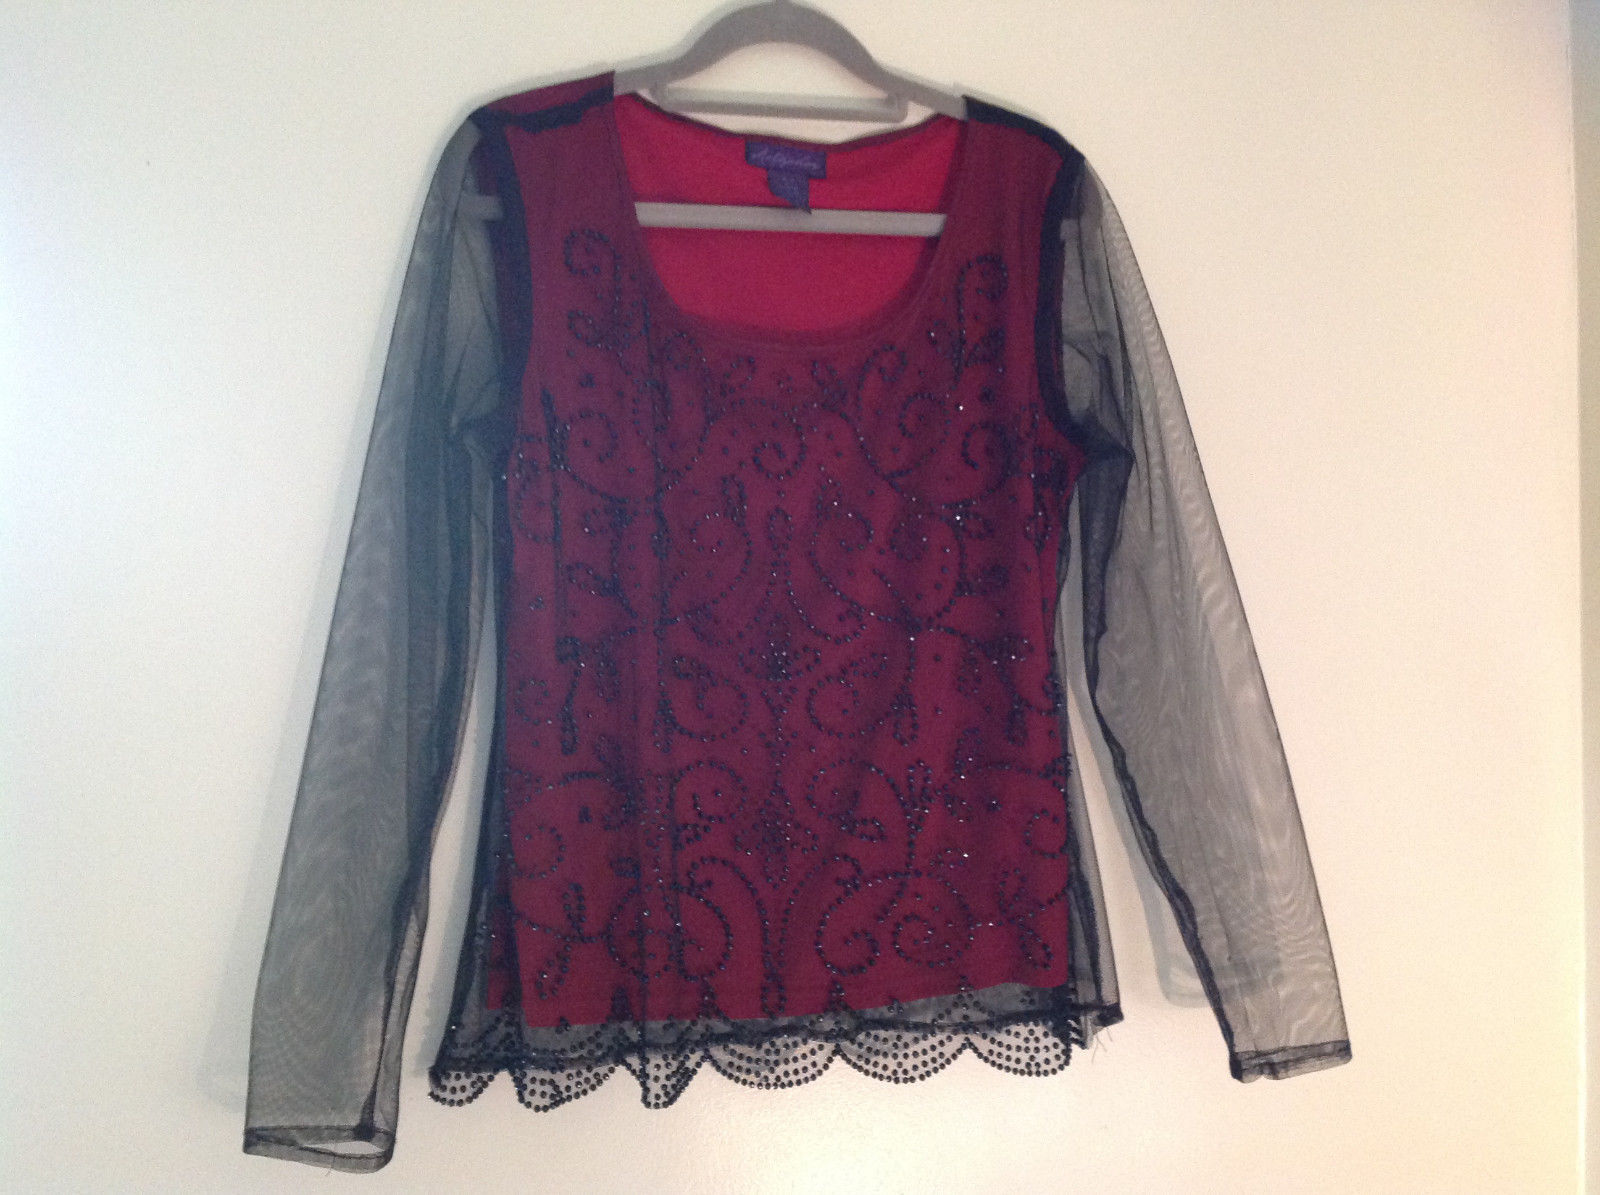 Metaphor Black Mesh Red Background Swirly Beaded Long Sleeve Shirt Size Medium